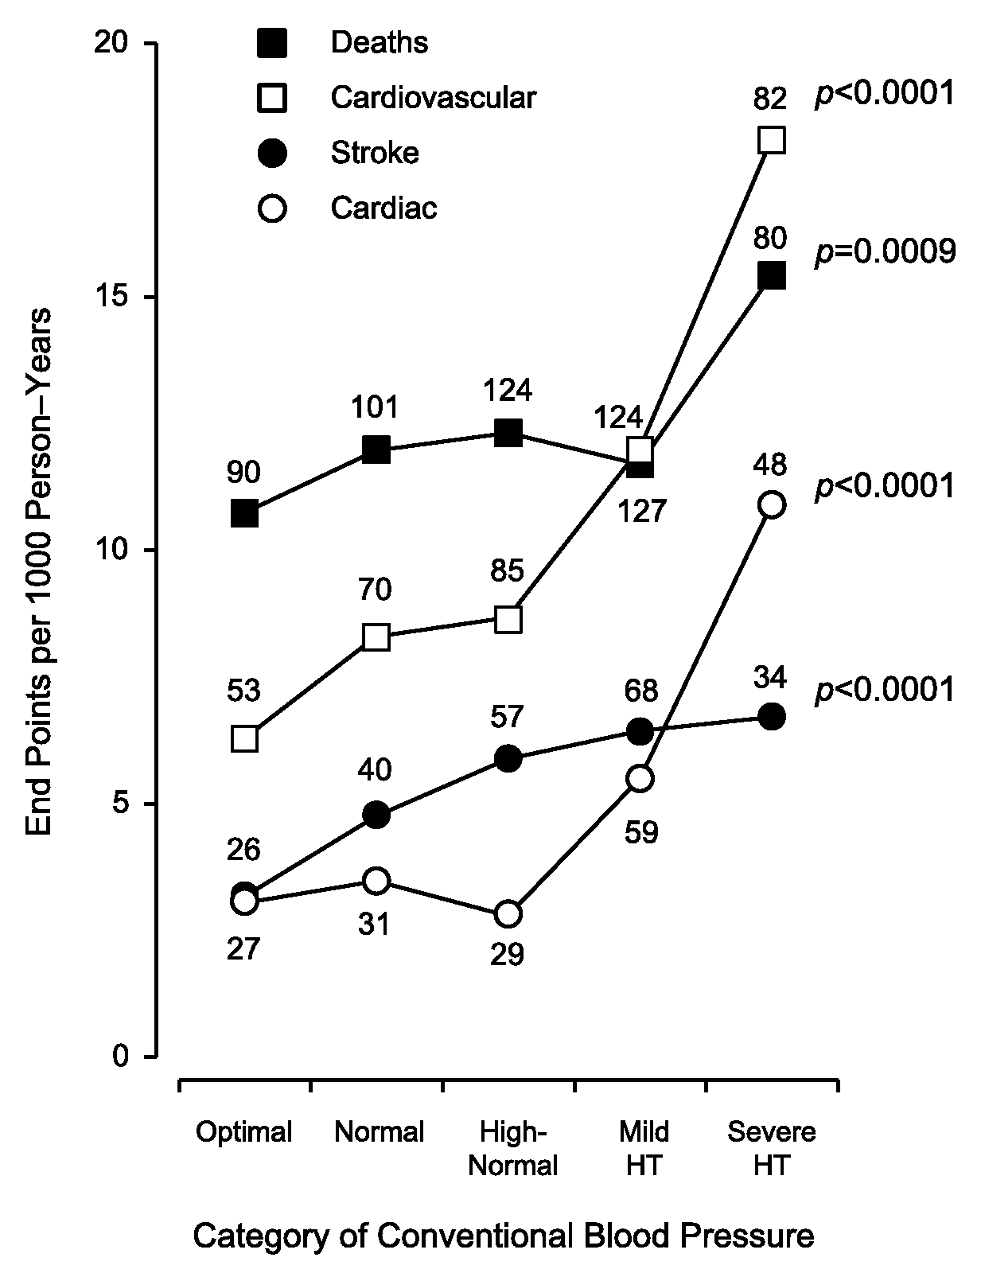 Incidence rates in 5,008 participants by increasing categories of conventional blood pressure.